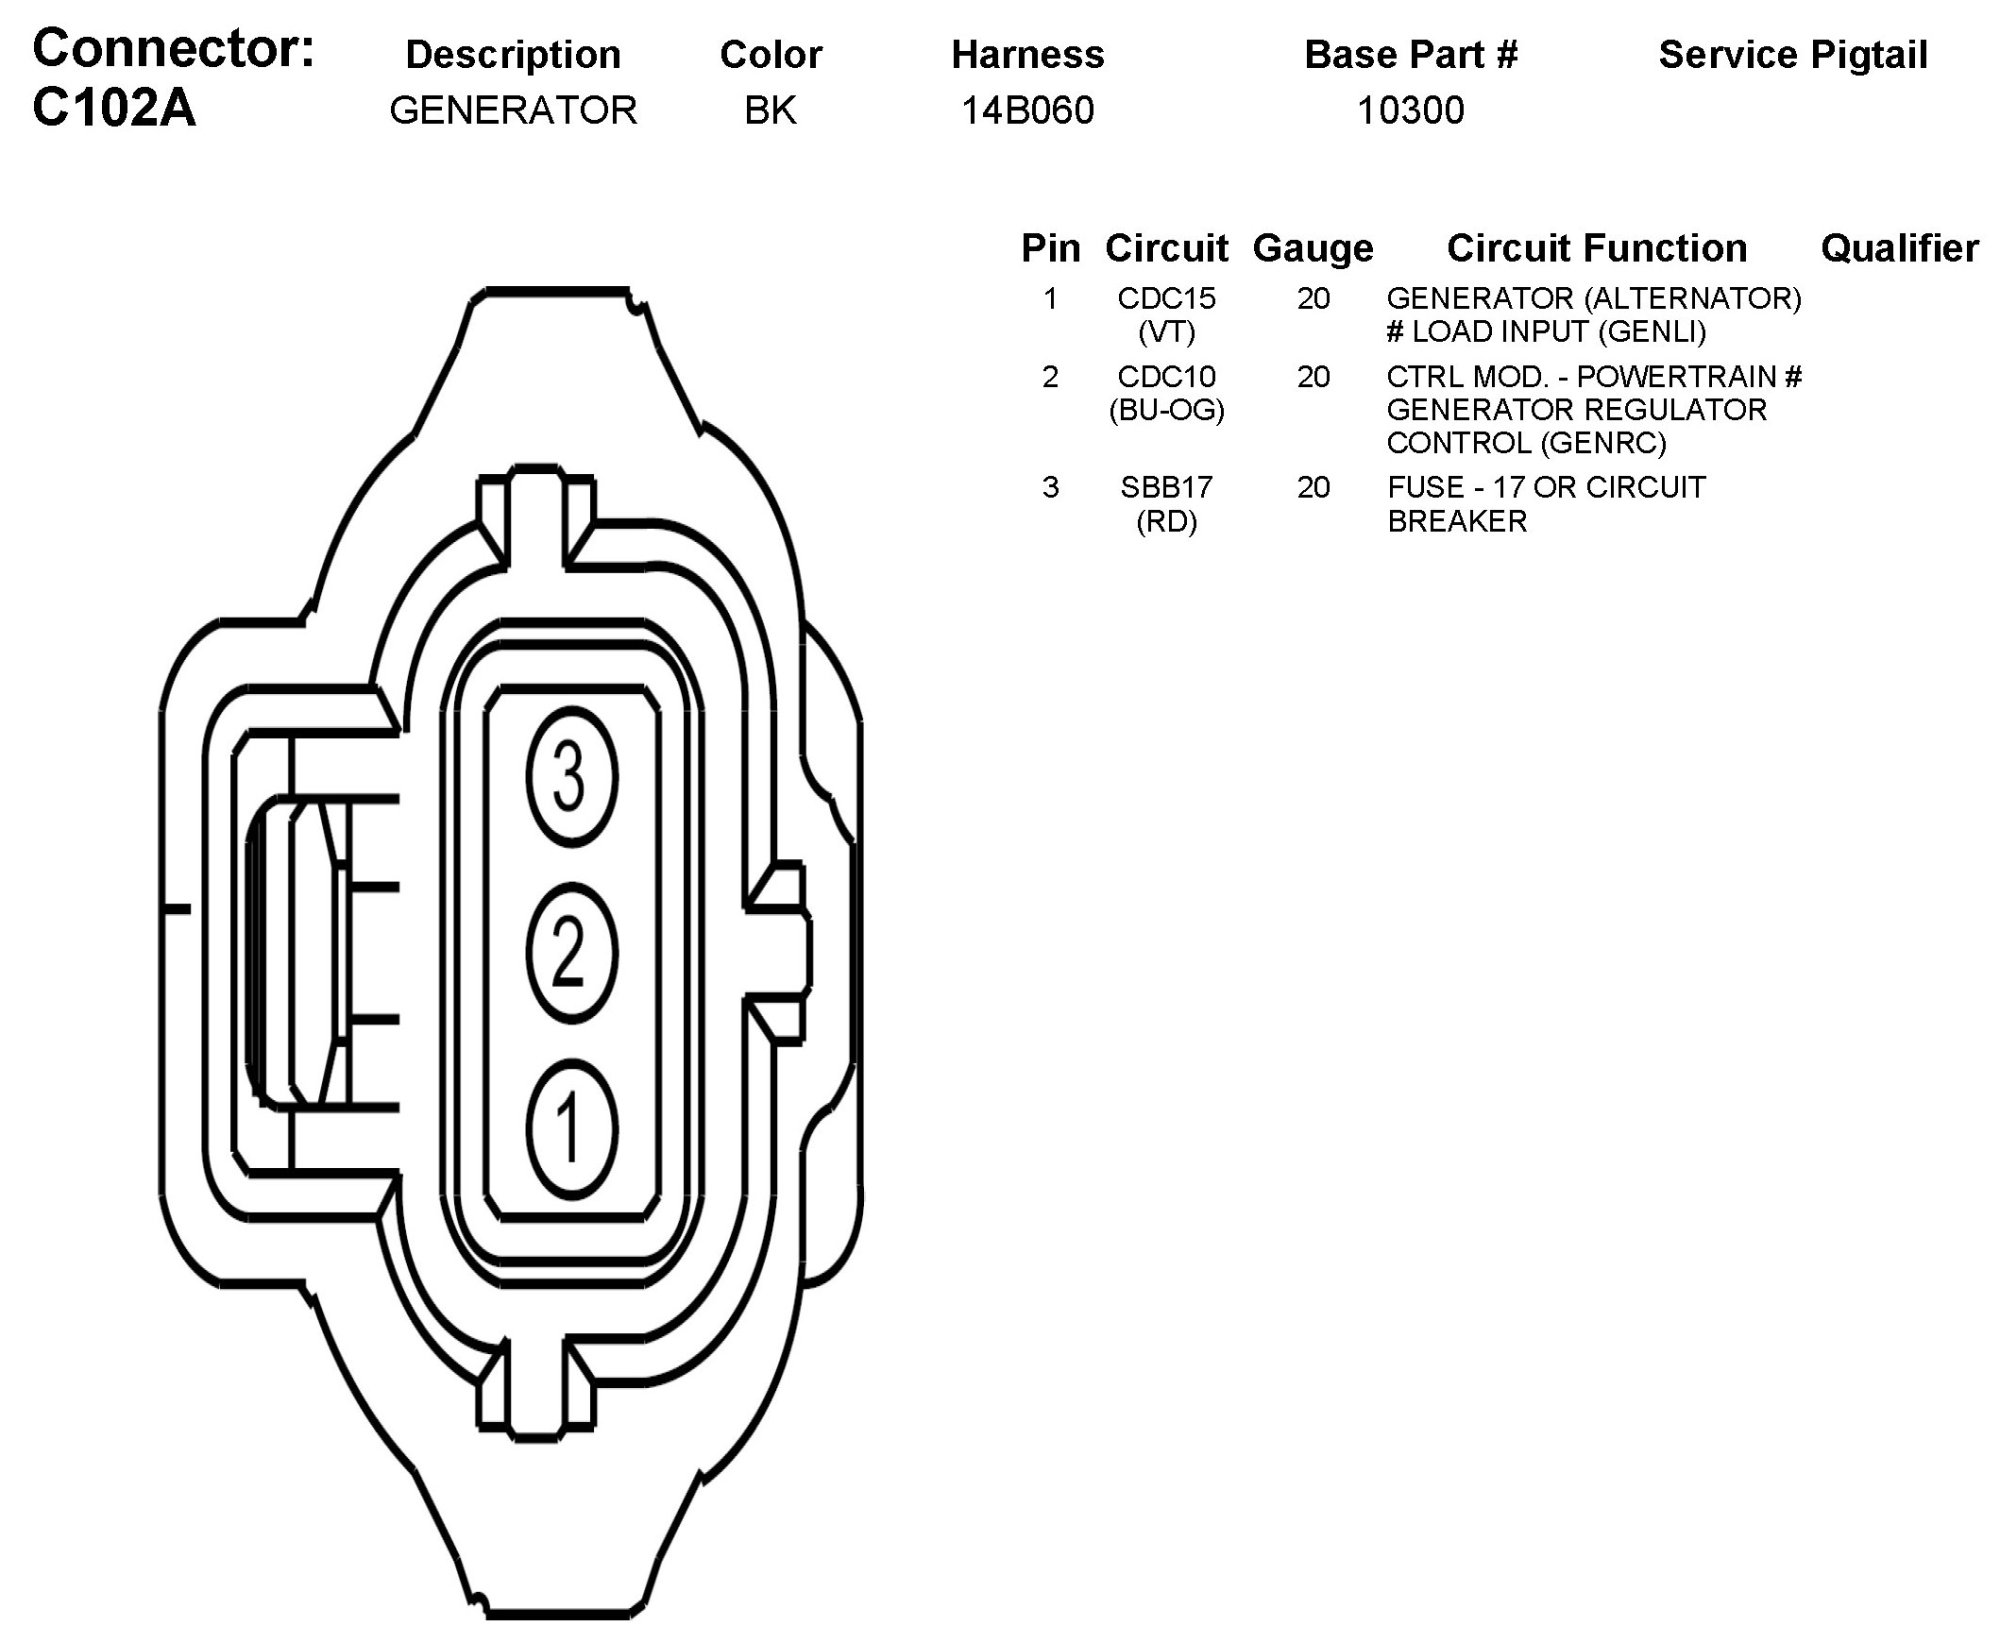 hight resolution of 2006 chrysler 3 8 engine diagram images gallery